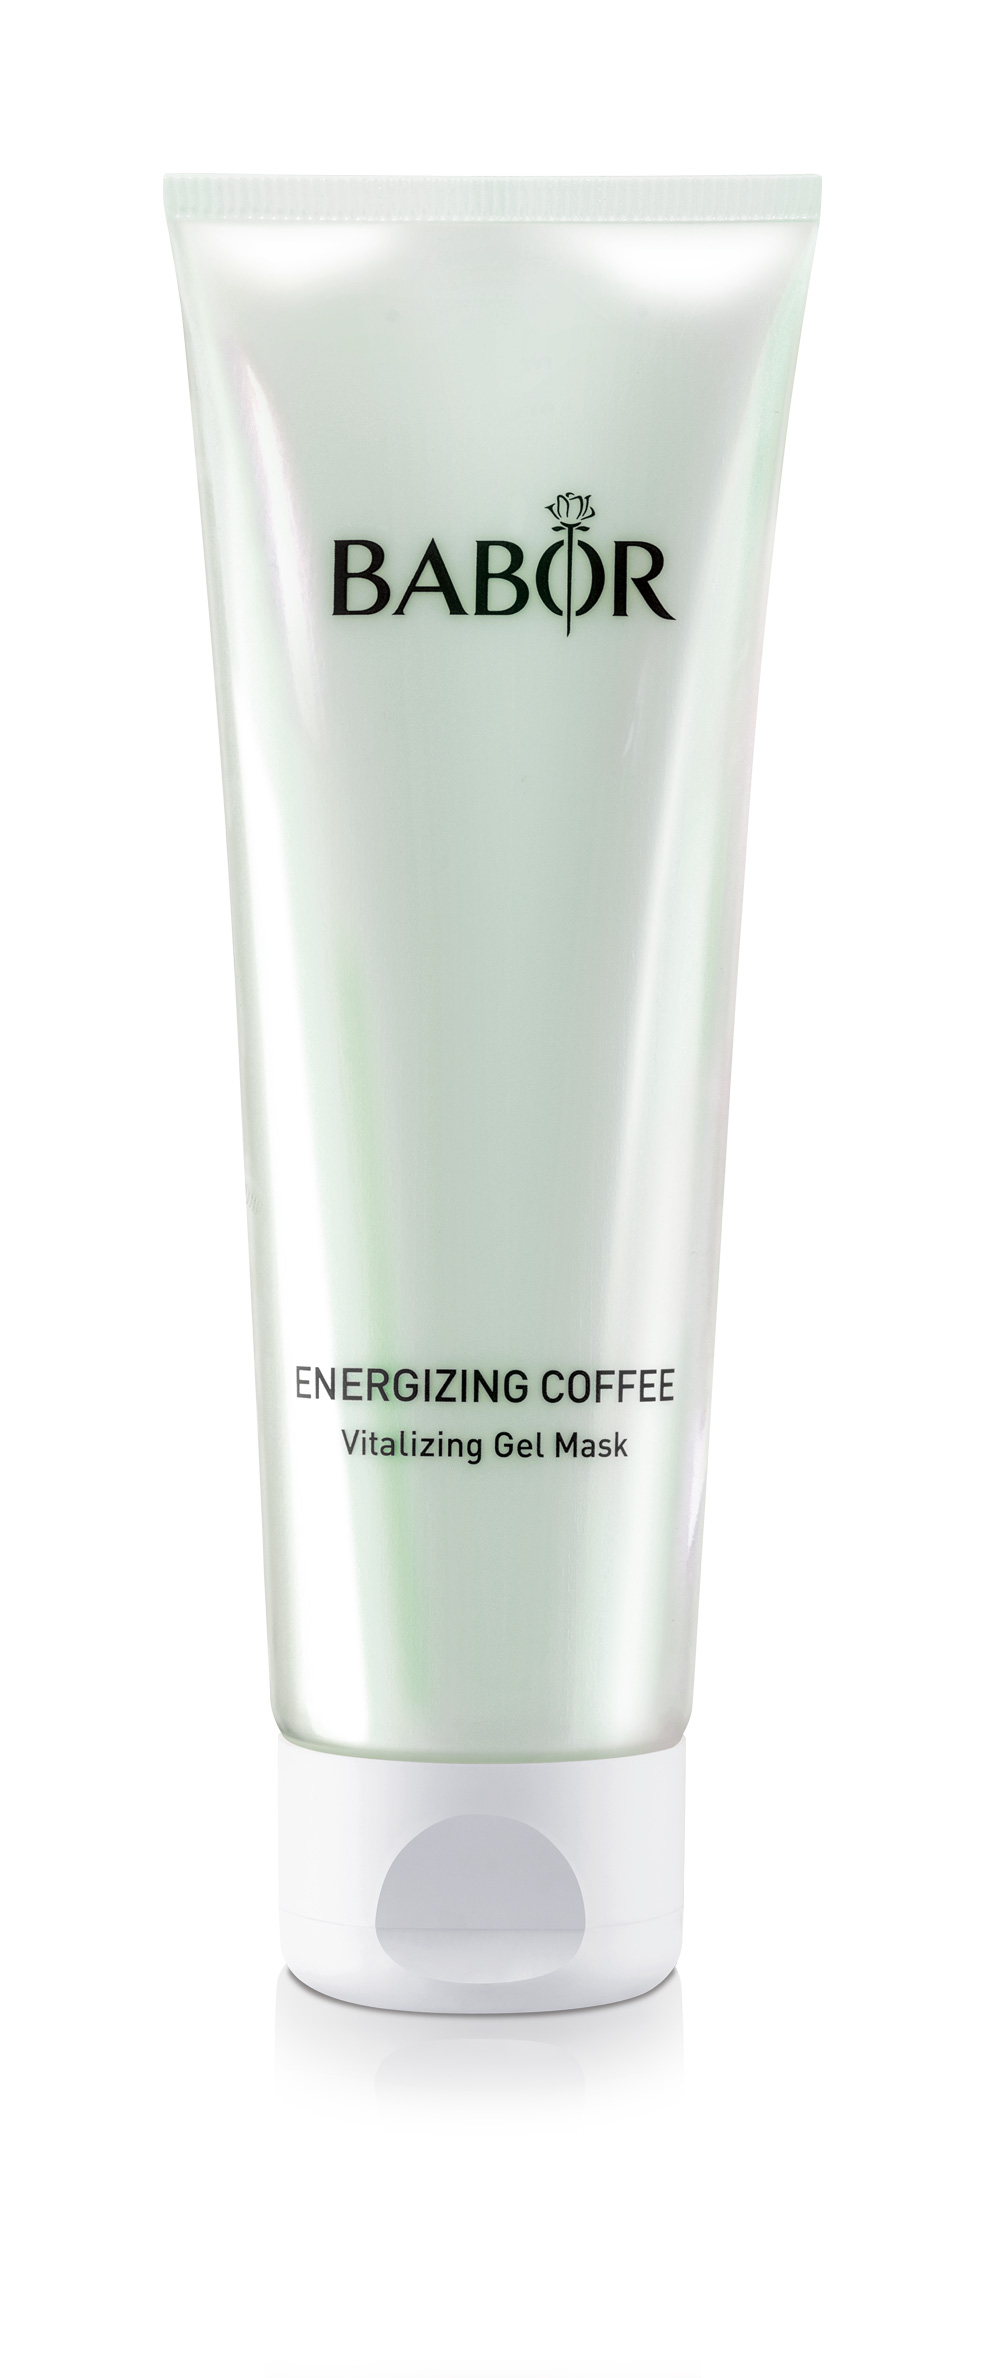 2019 energizing coffee mask